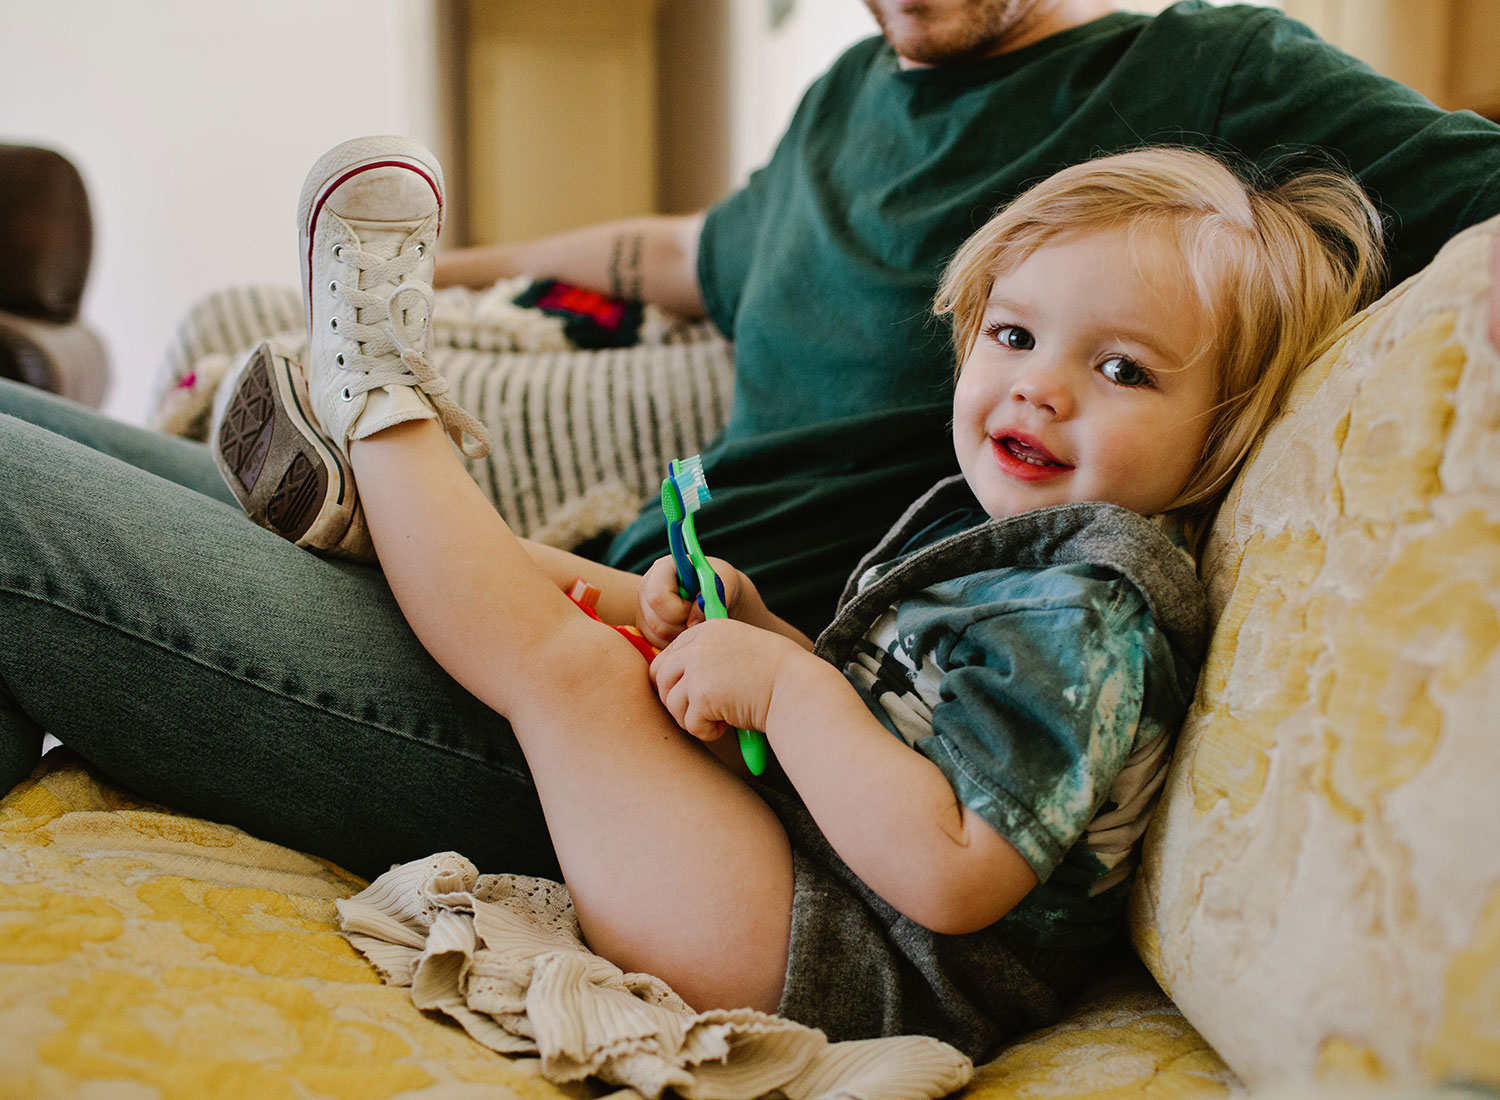 Smiling Child on Couch Holding Toothbrush